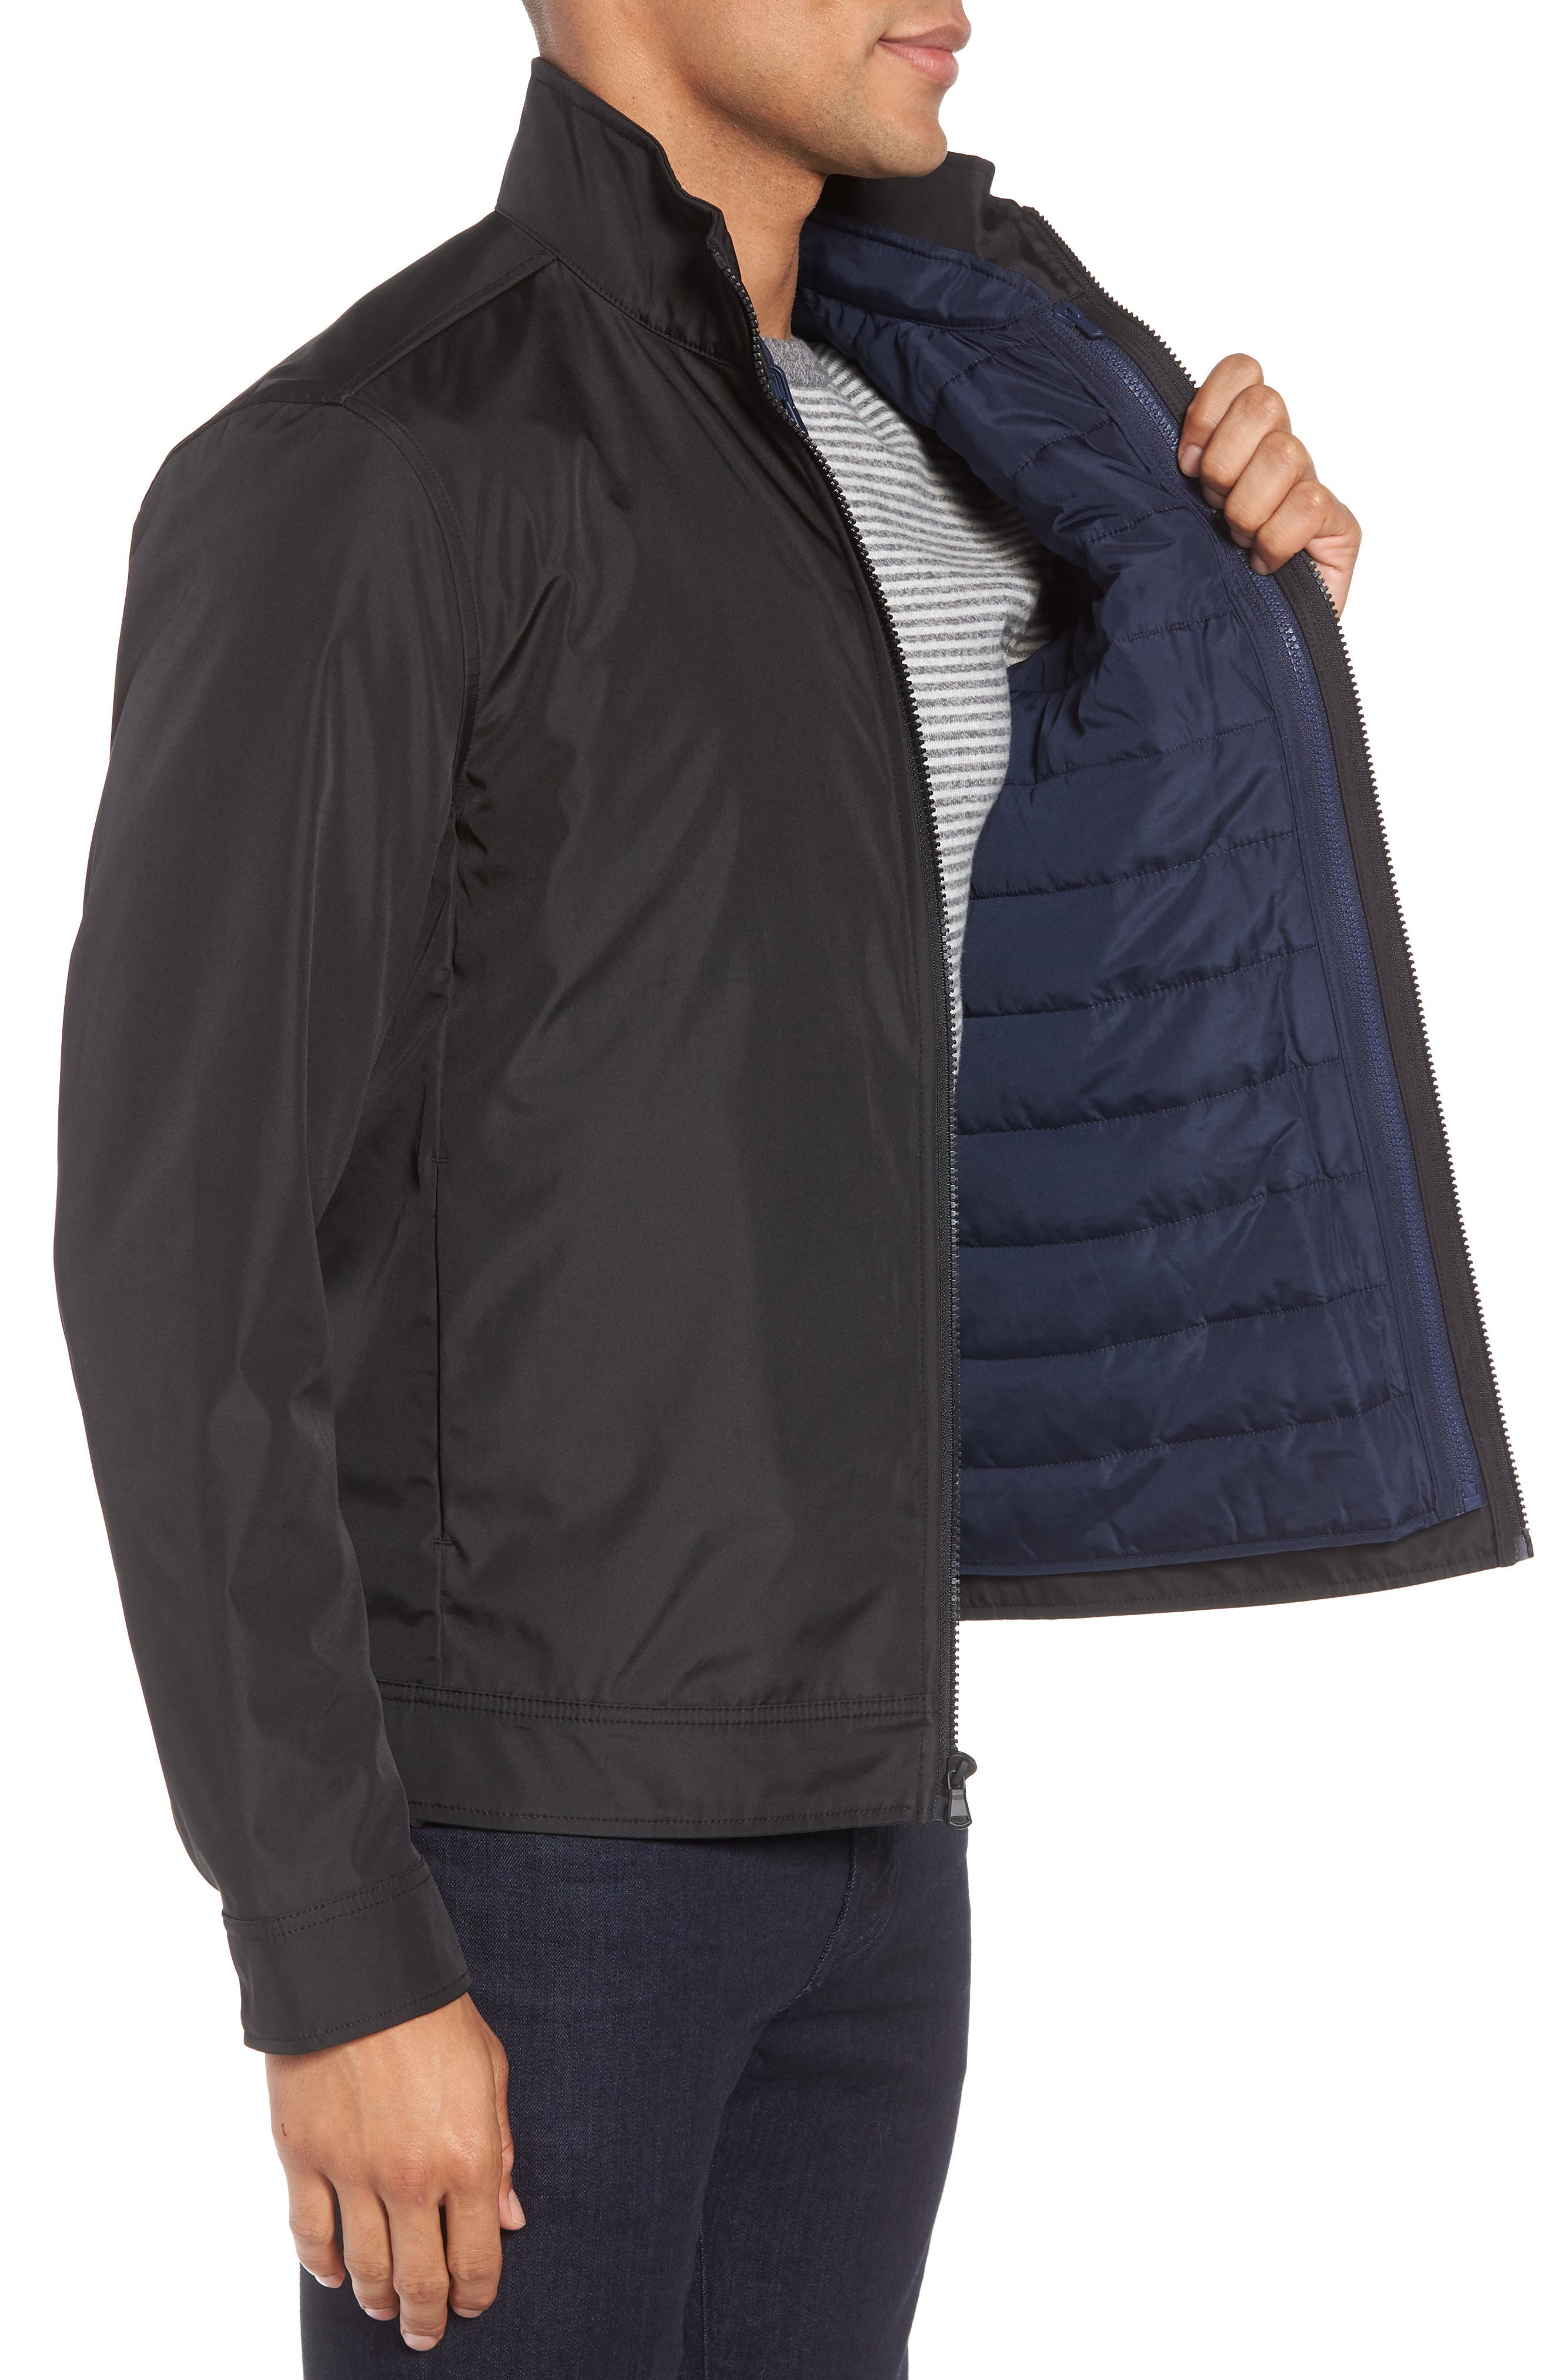 Oxford 2-in-1 Jacket,                             Alternate thumbnail 3, color,                             Navy